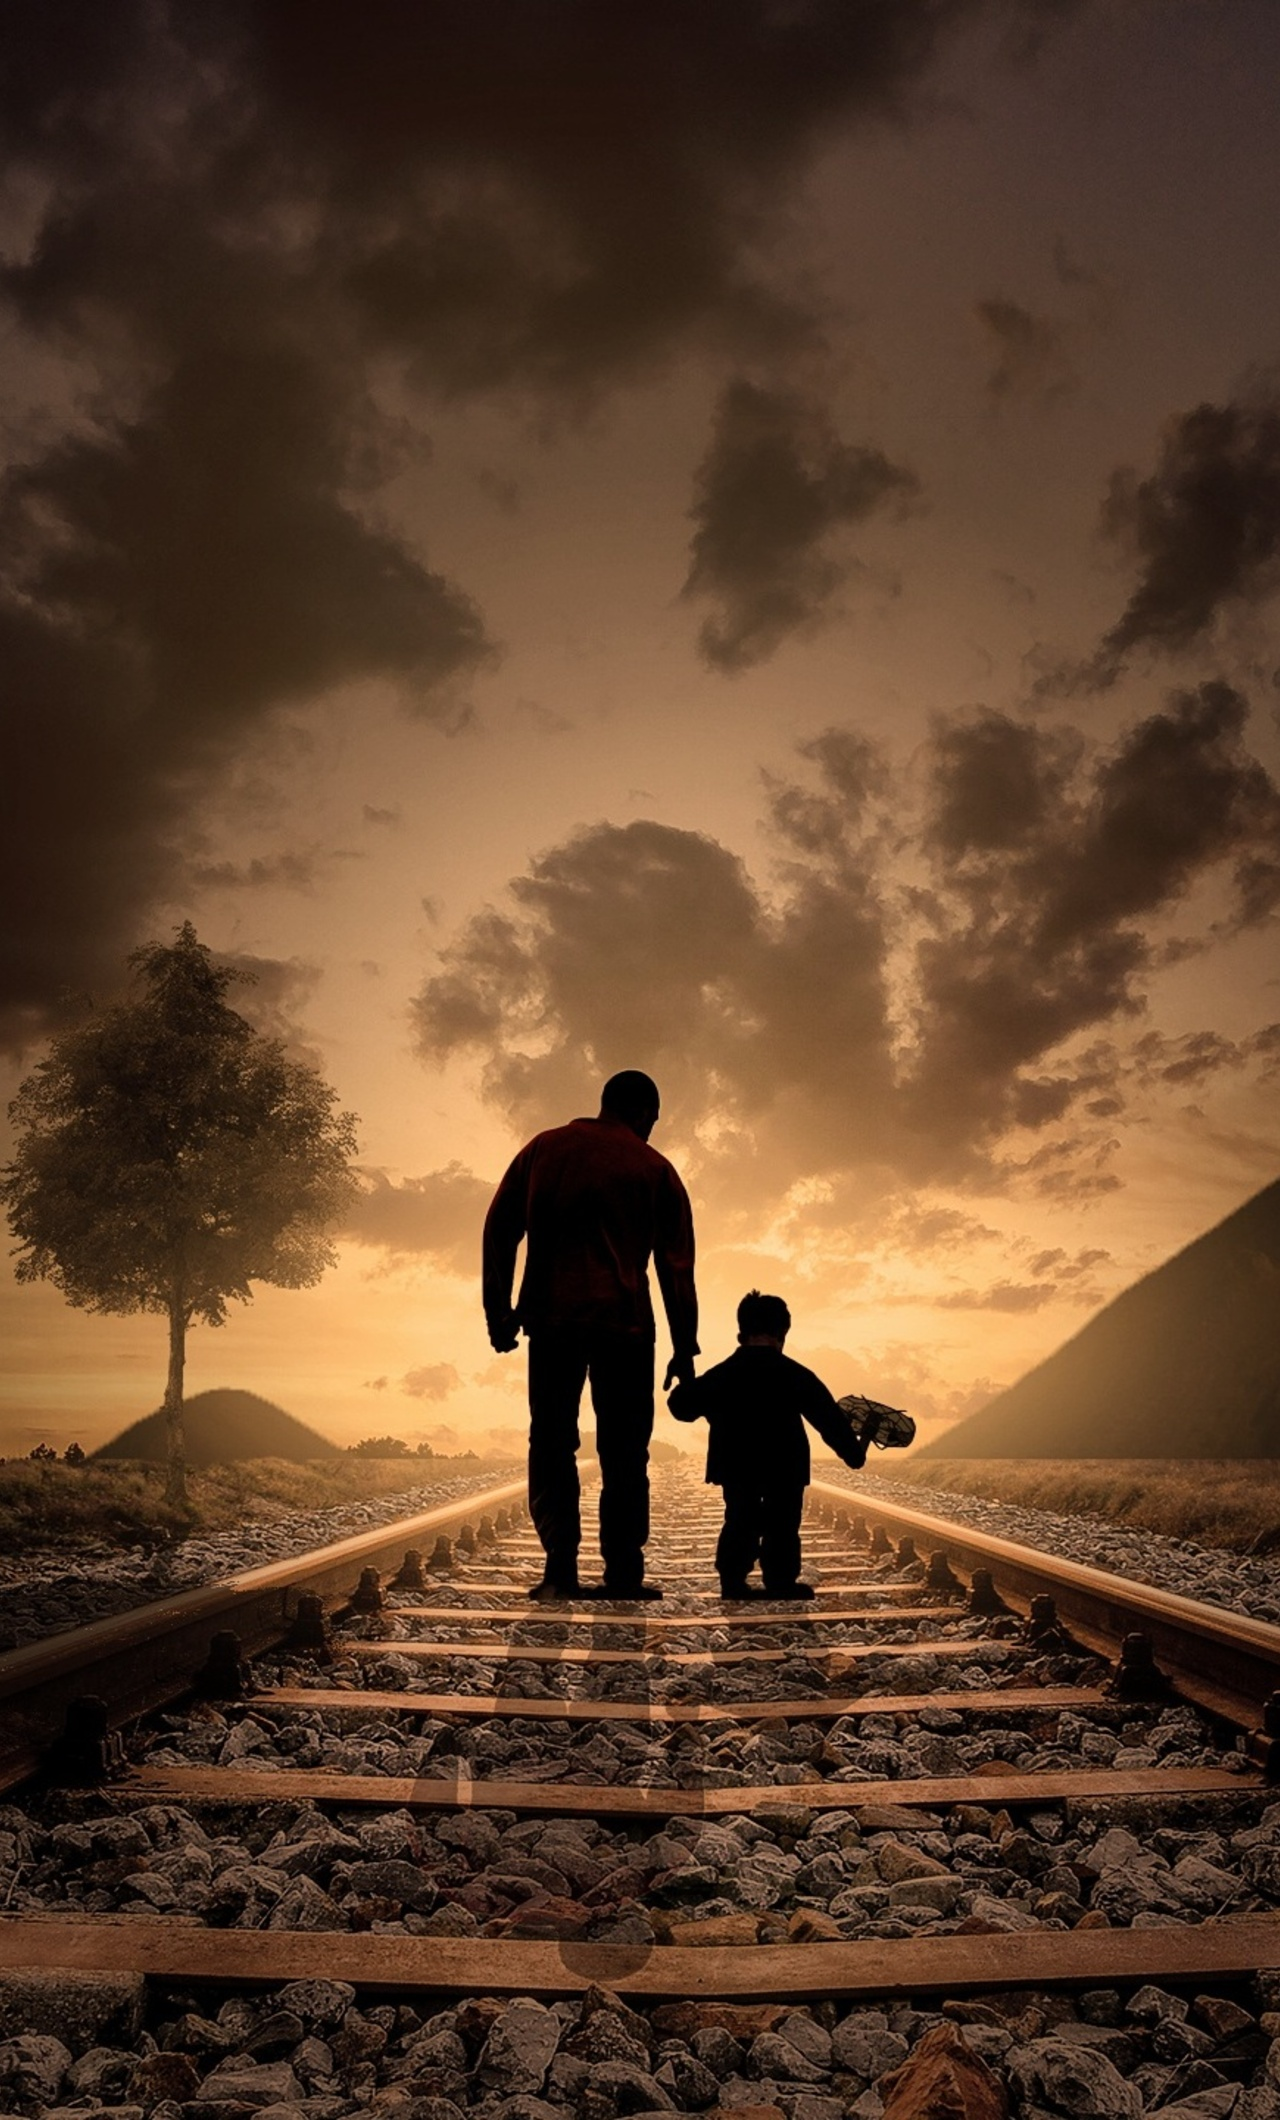 1280x2120 father son walking railraod iphone 6 hd 4k wallpapers